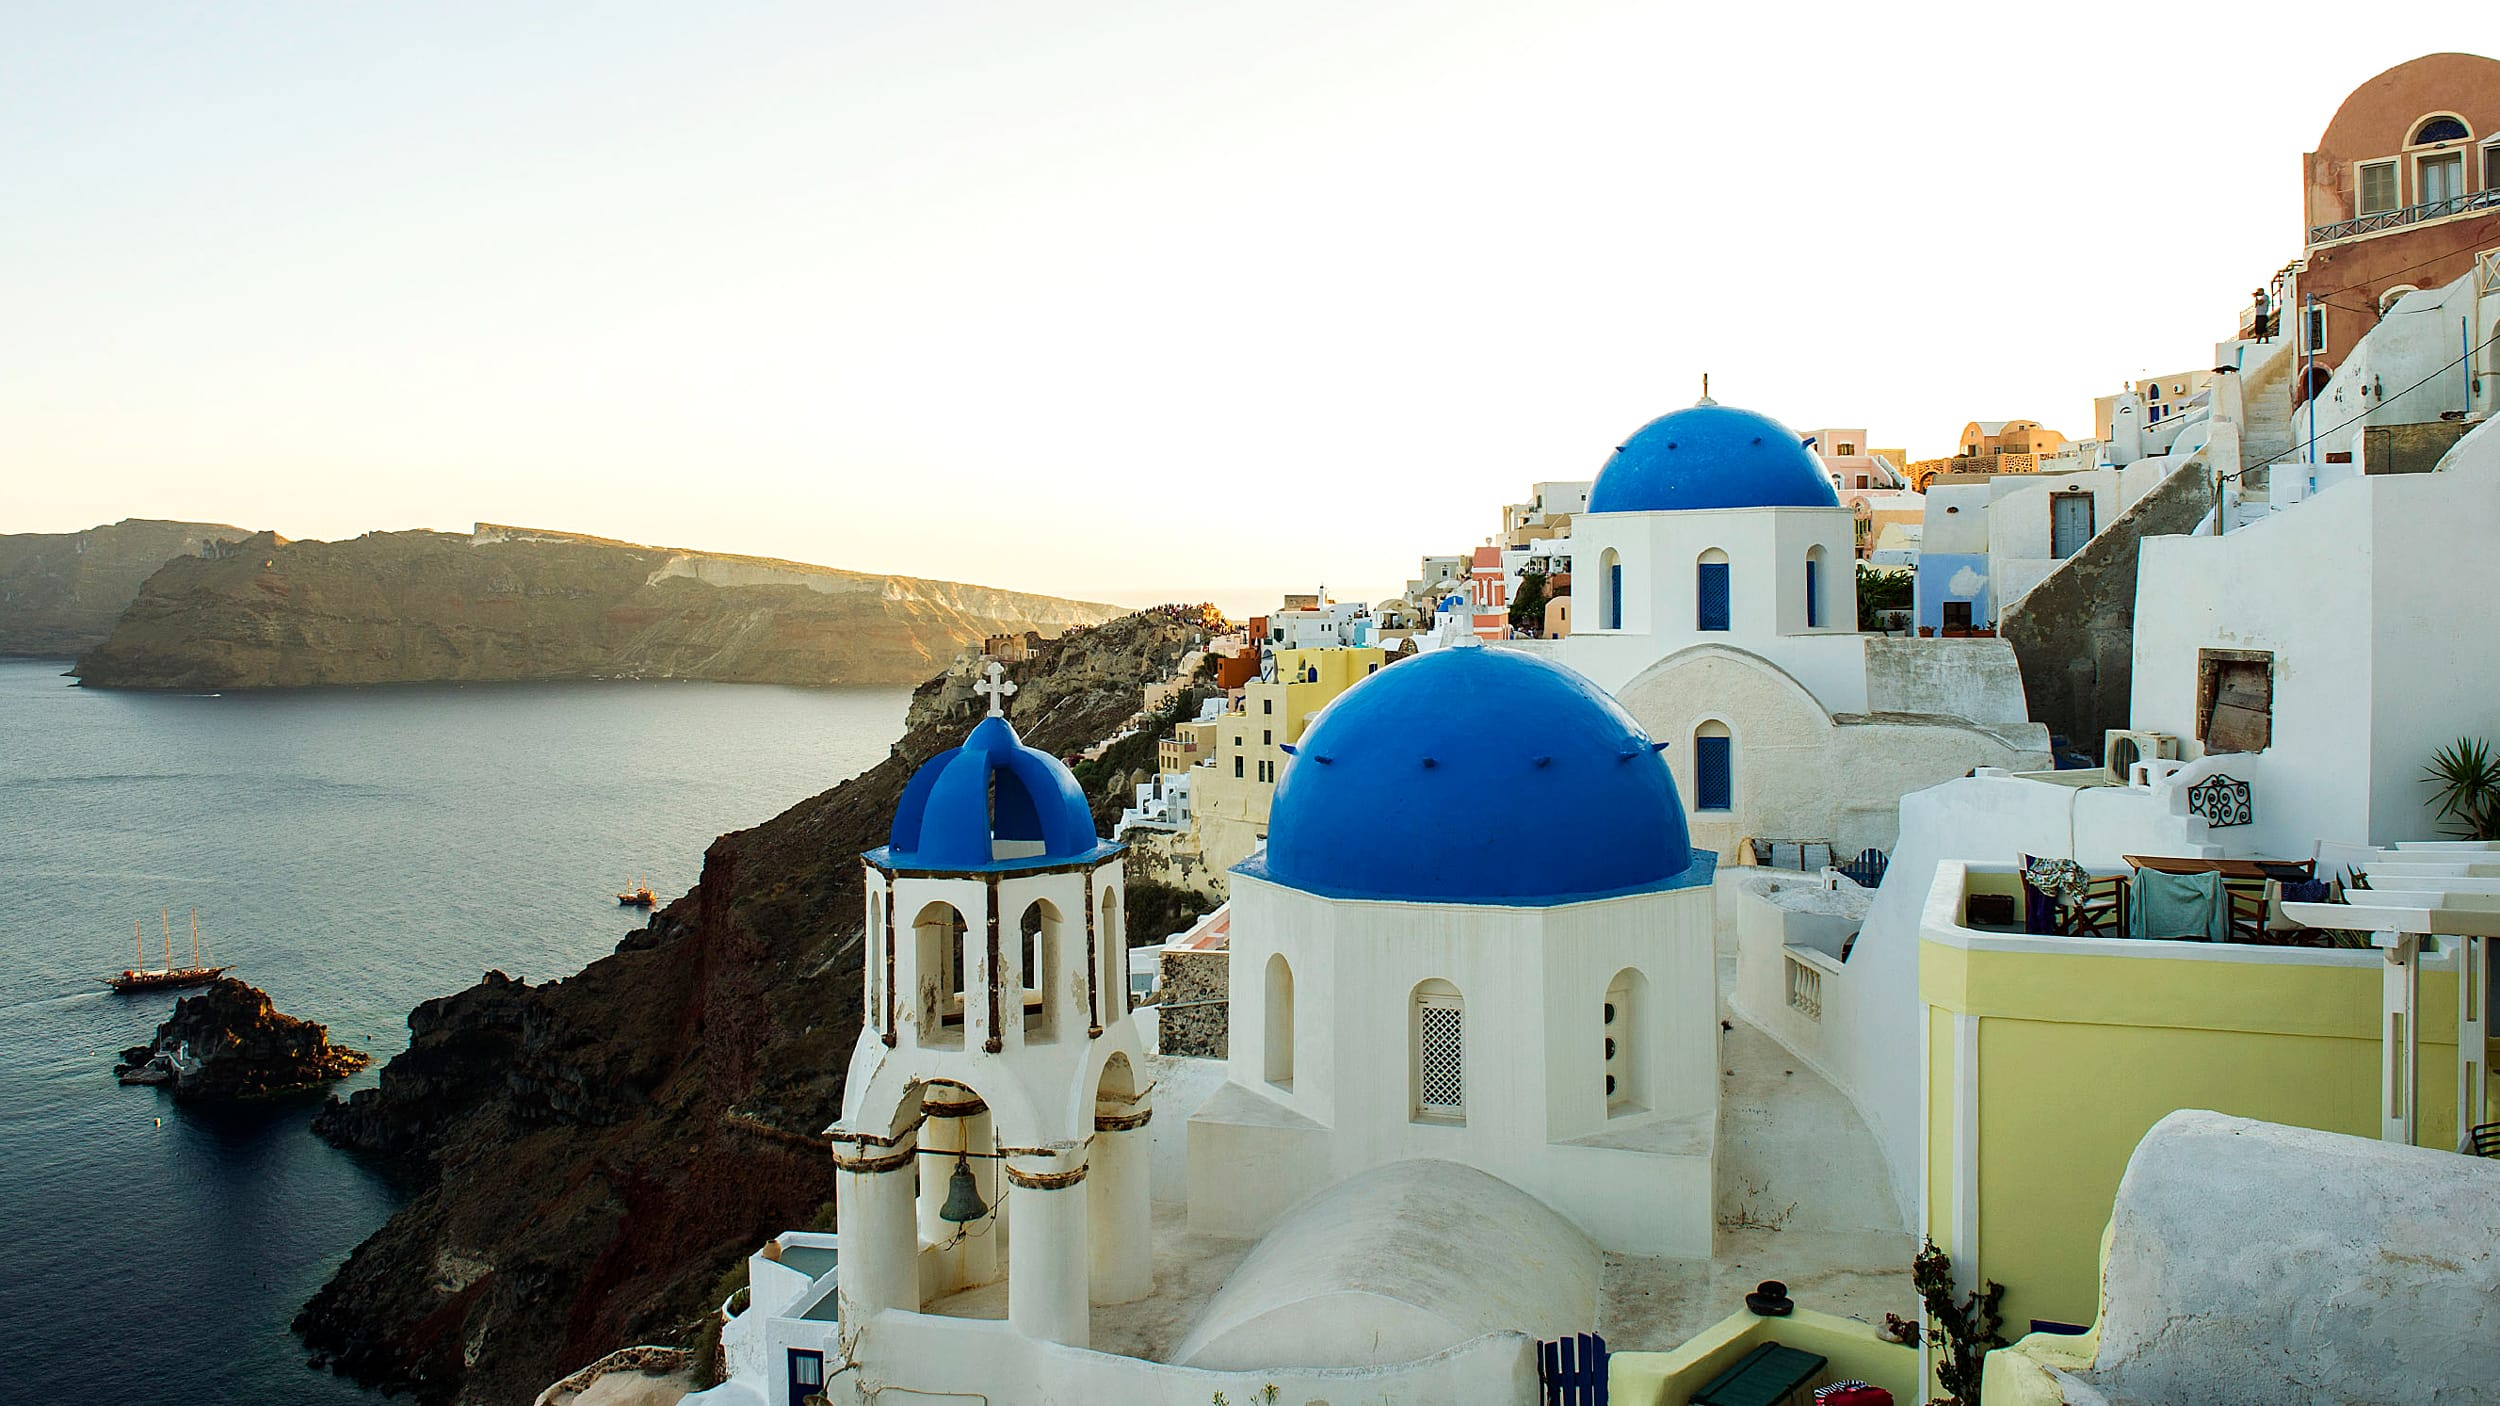 Traditional Greek Cycladic buildings on a cliff in Oia, Greece, overlooking the Aegean Sea